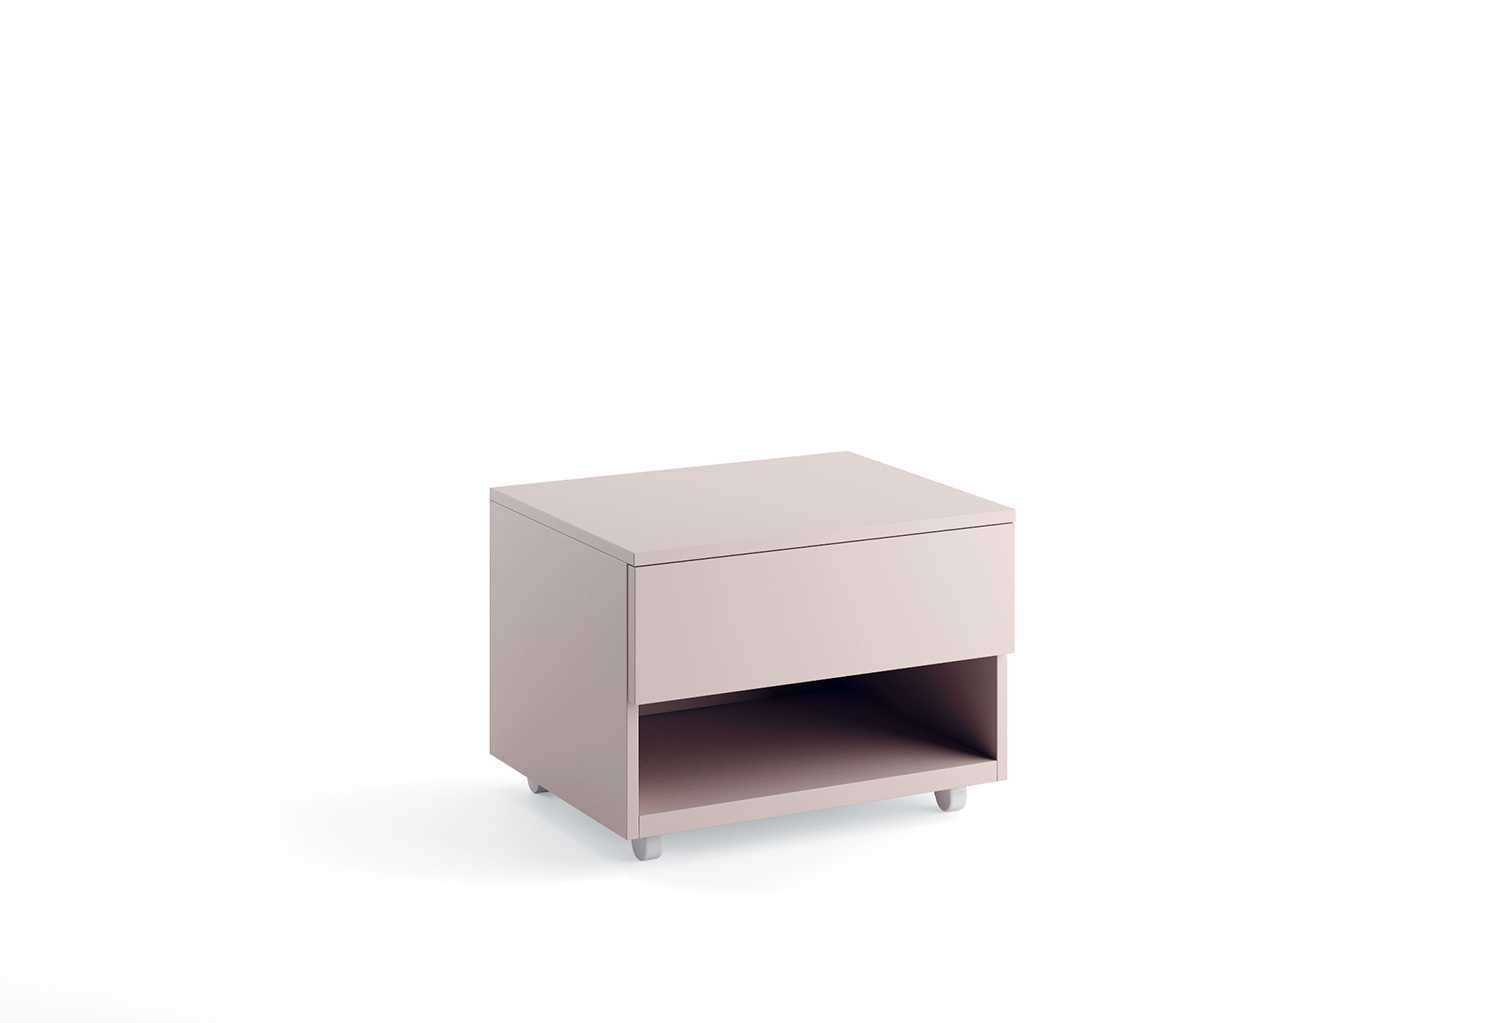 Bedside table with 1 drawer and 1 open storage